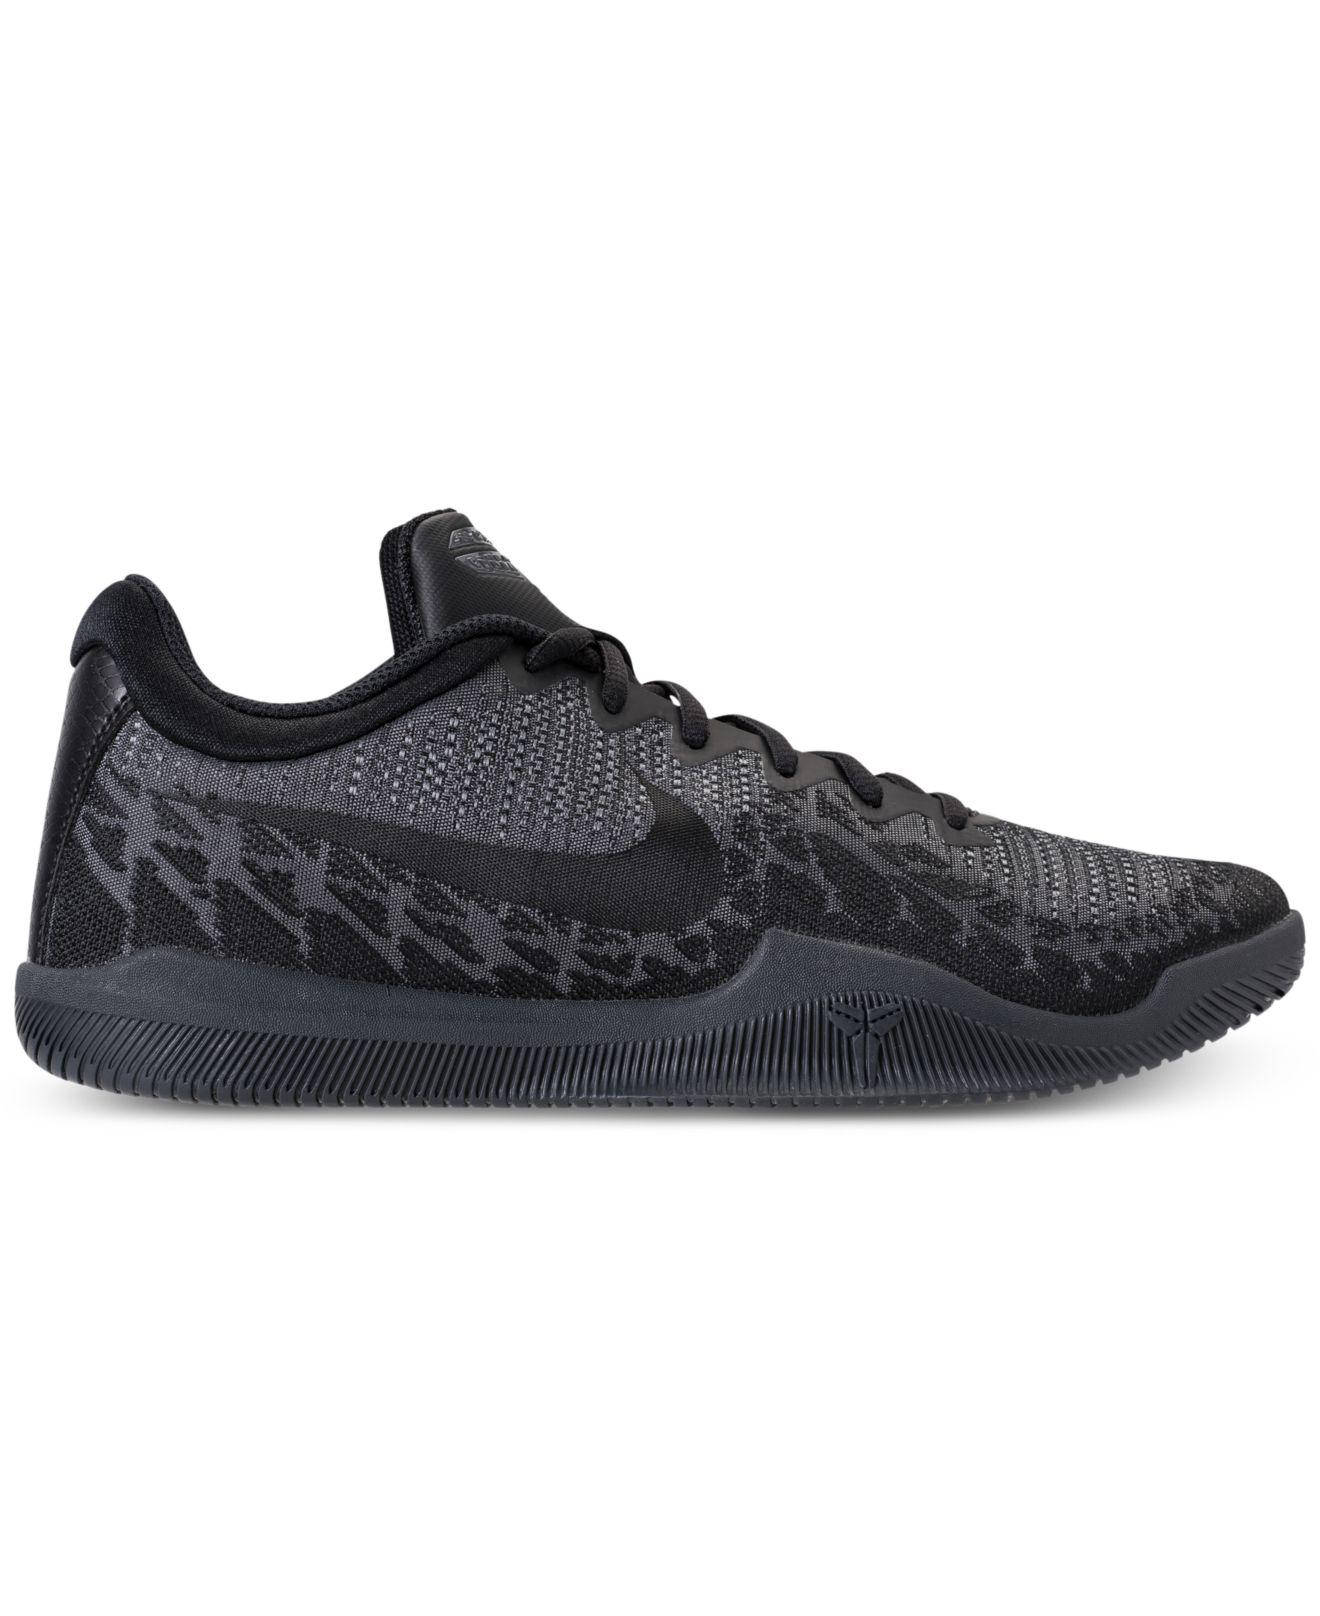 info for bbf68 ffc96 Nike Men s Kobe Mamba Rage Basketball Sneakers From Finish Line in ...